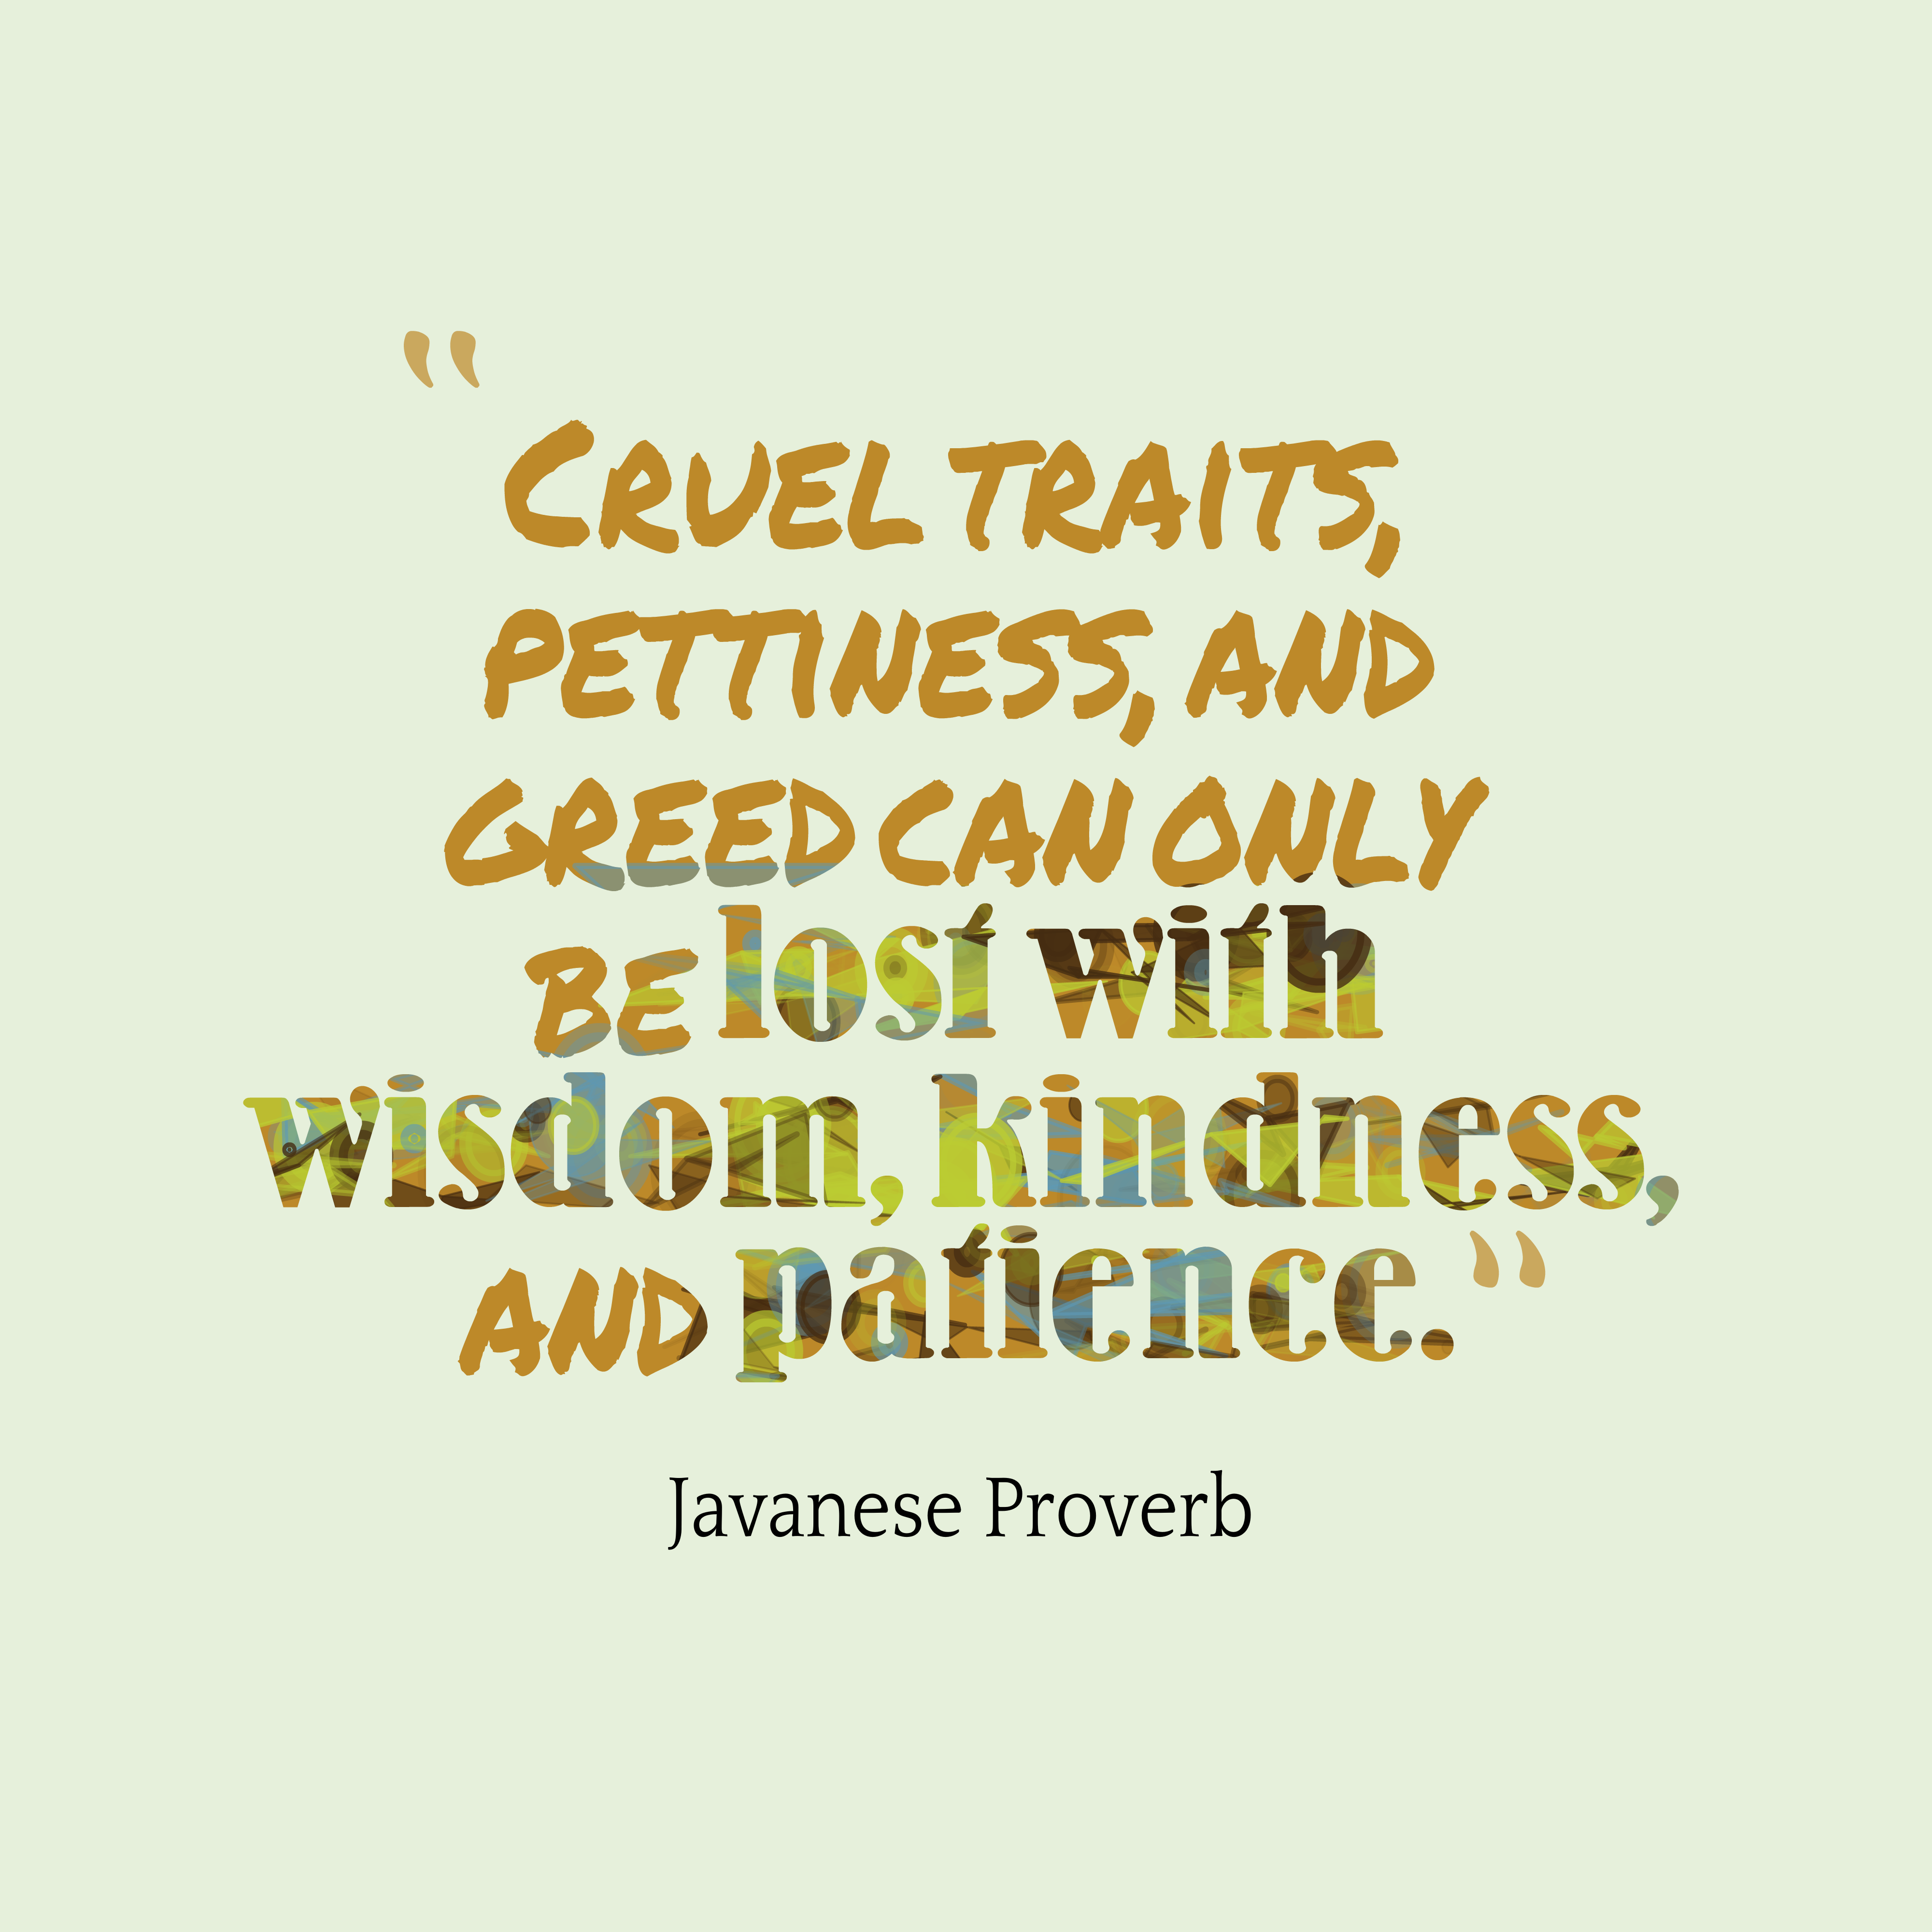 Javanese proverb about wisdom